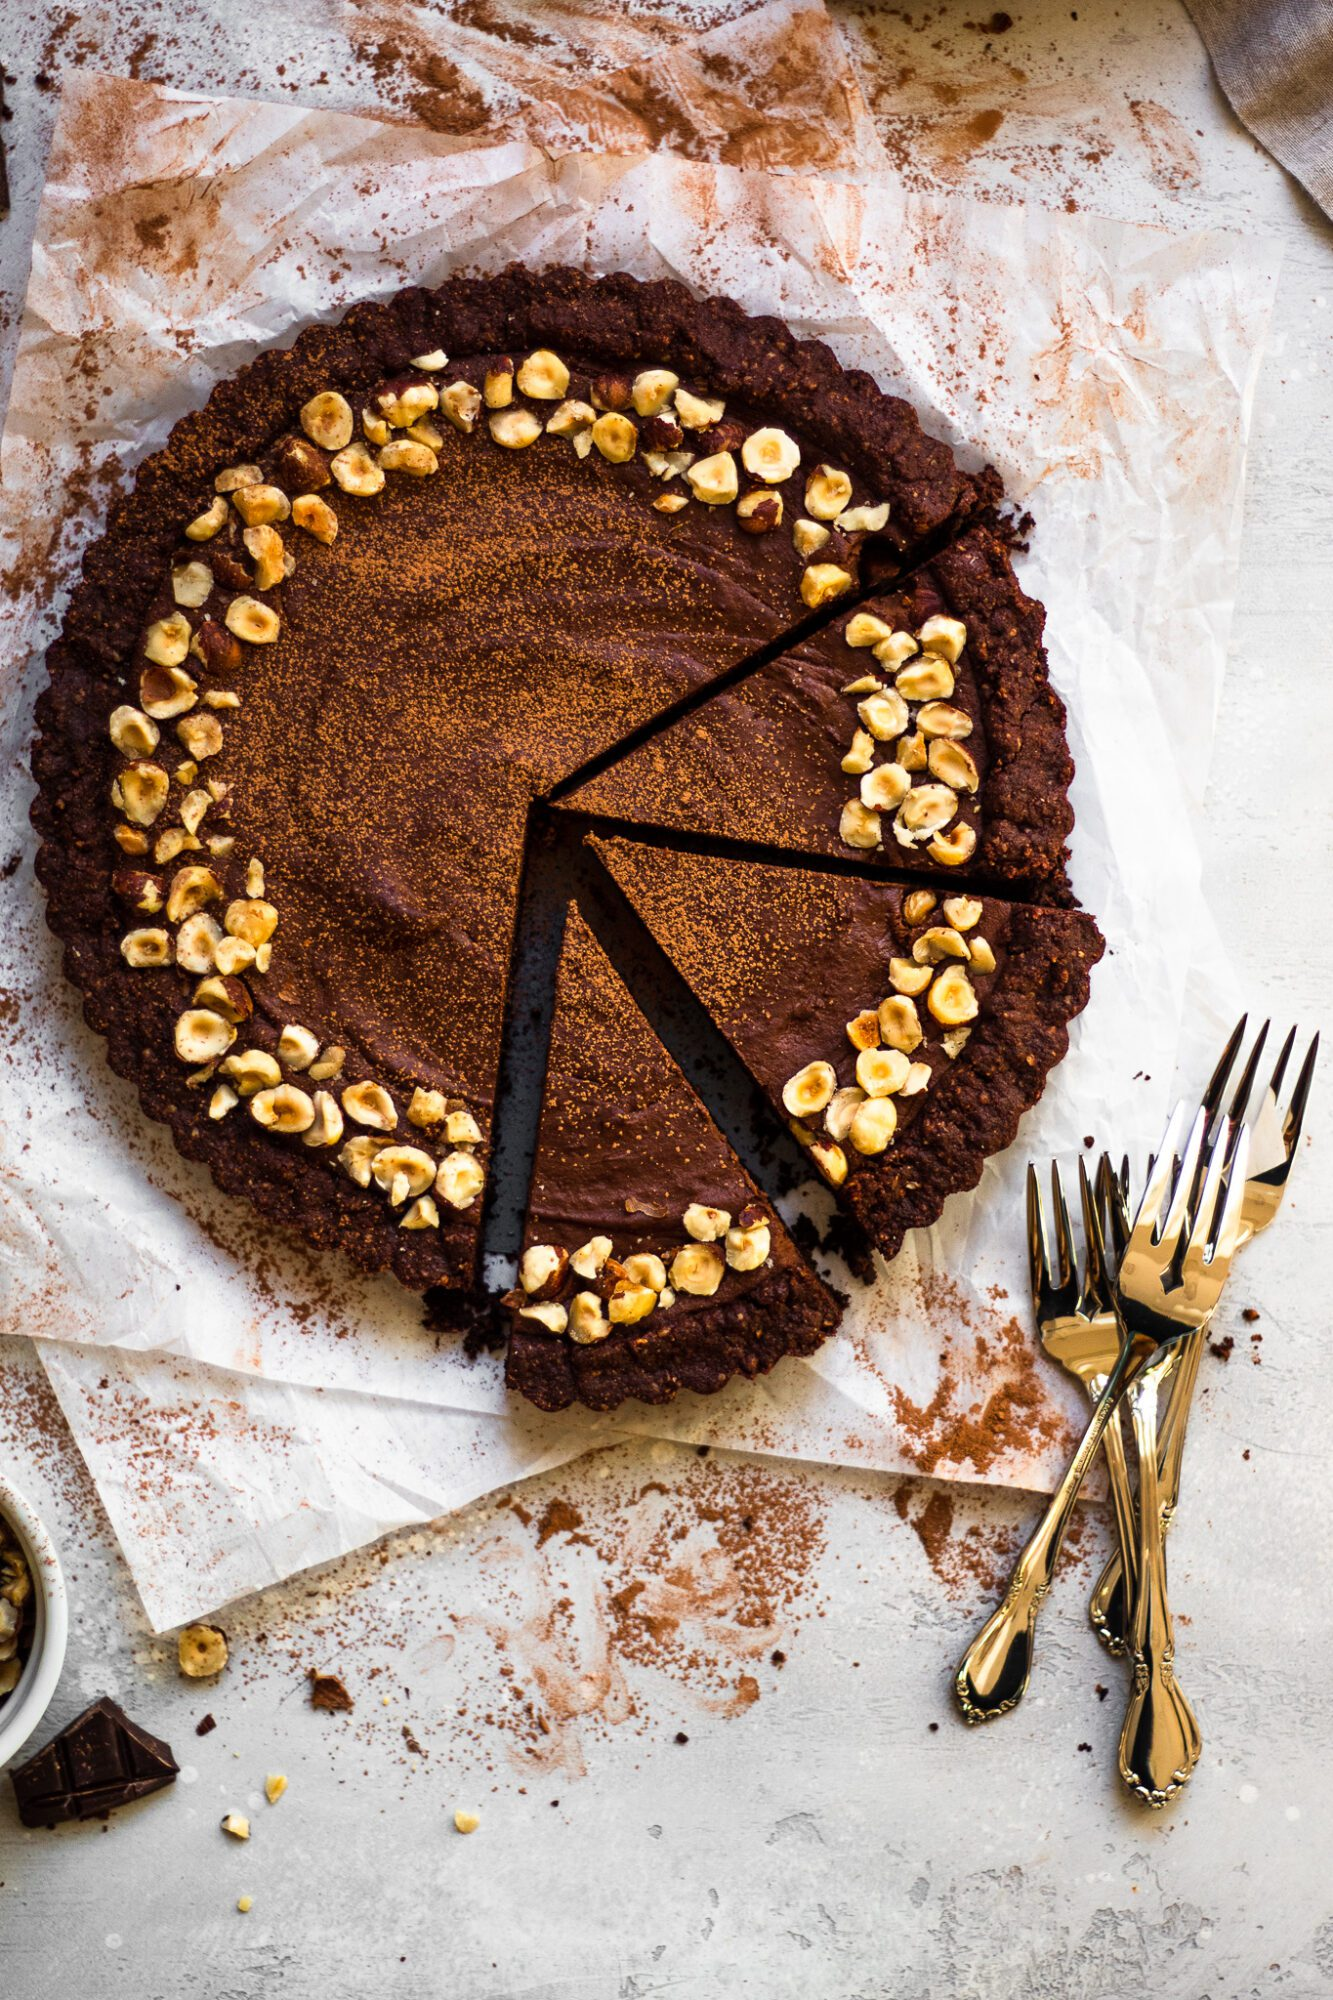 slices of chocolate hazelnut tart